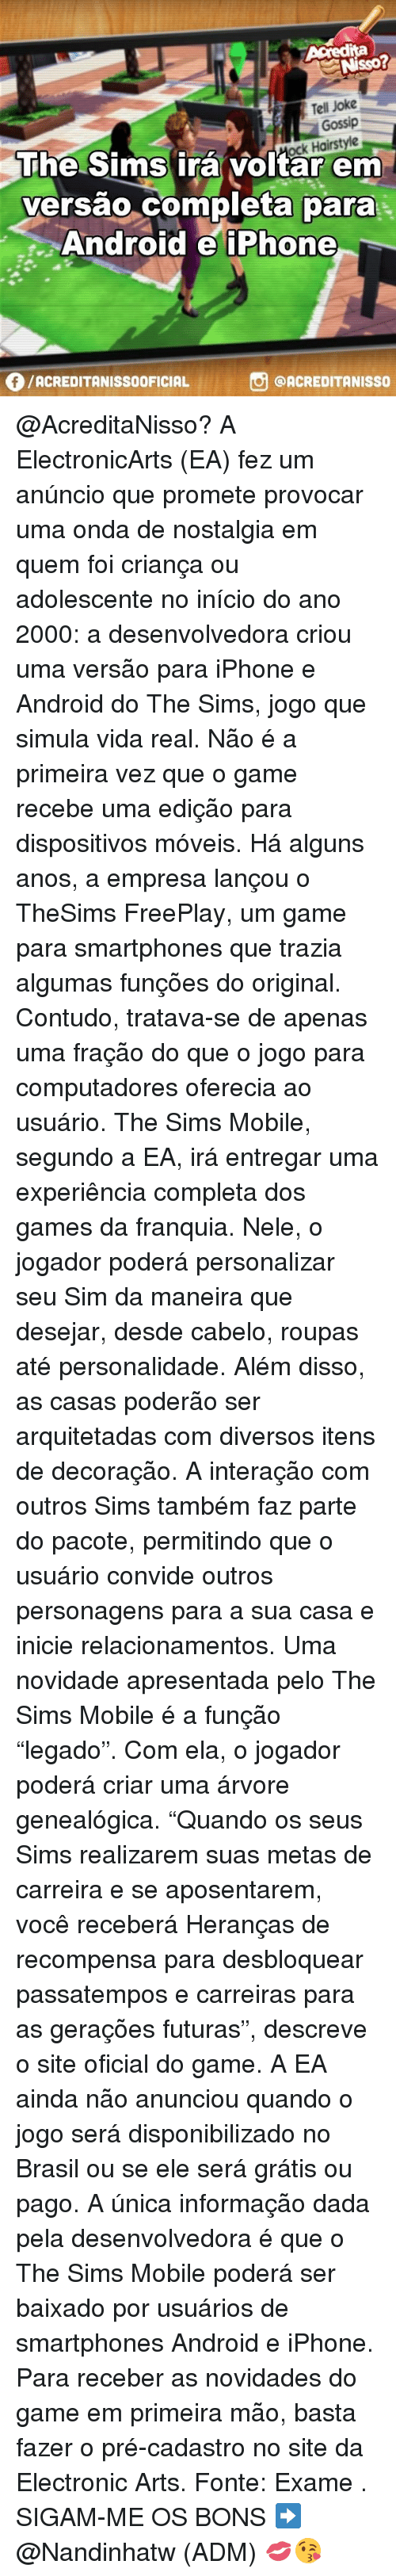 Igt Brasil the sims mobile - 637068